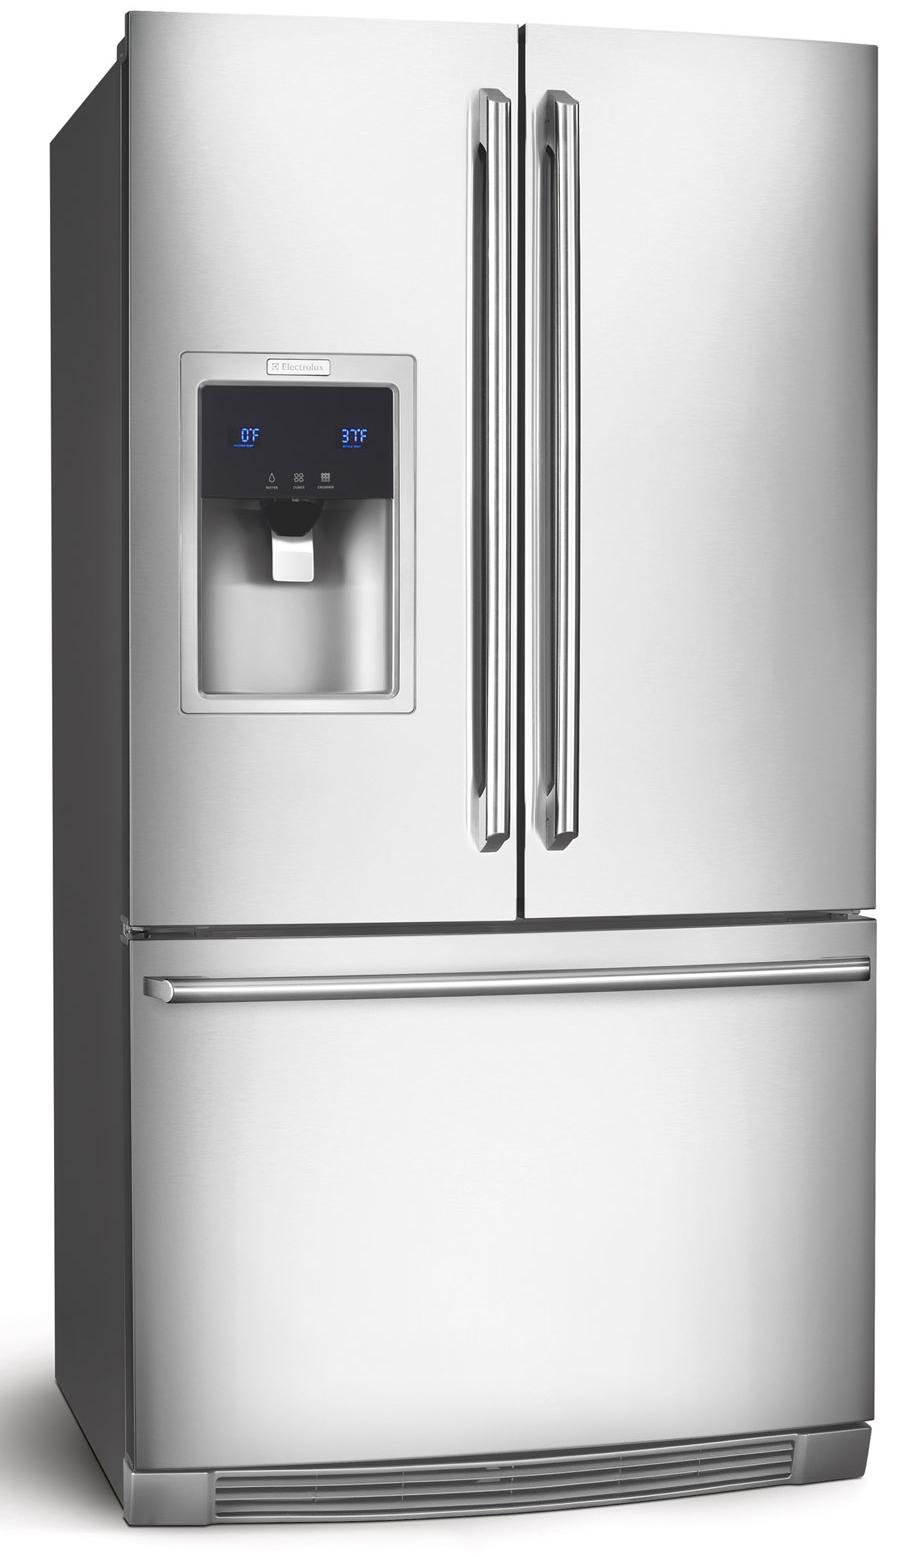 Pictures of Electrolux Wave Touch French Door Refrigerator